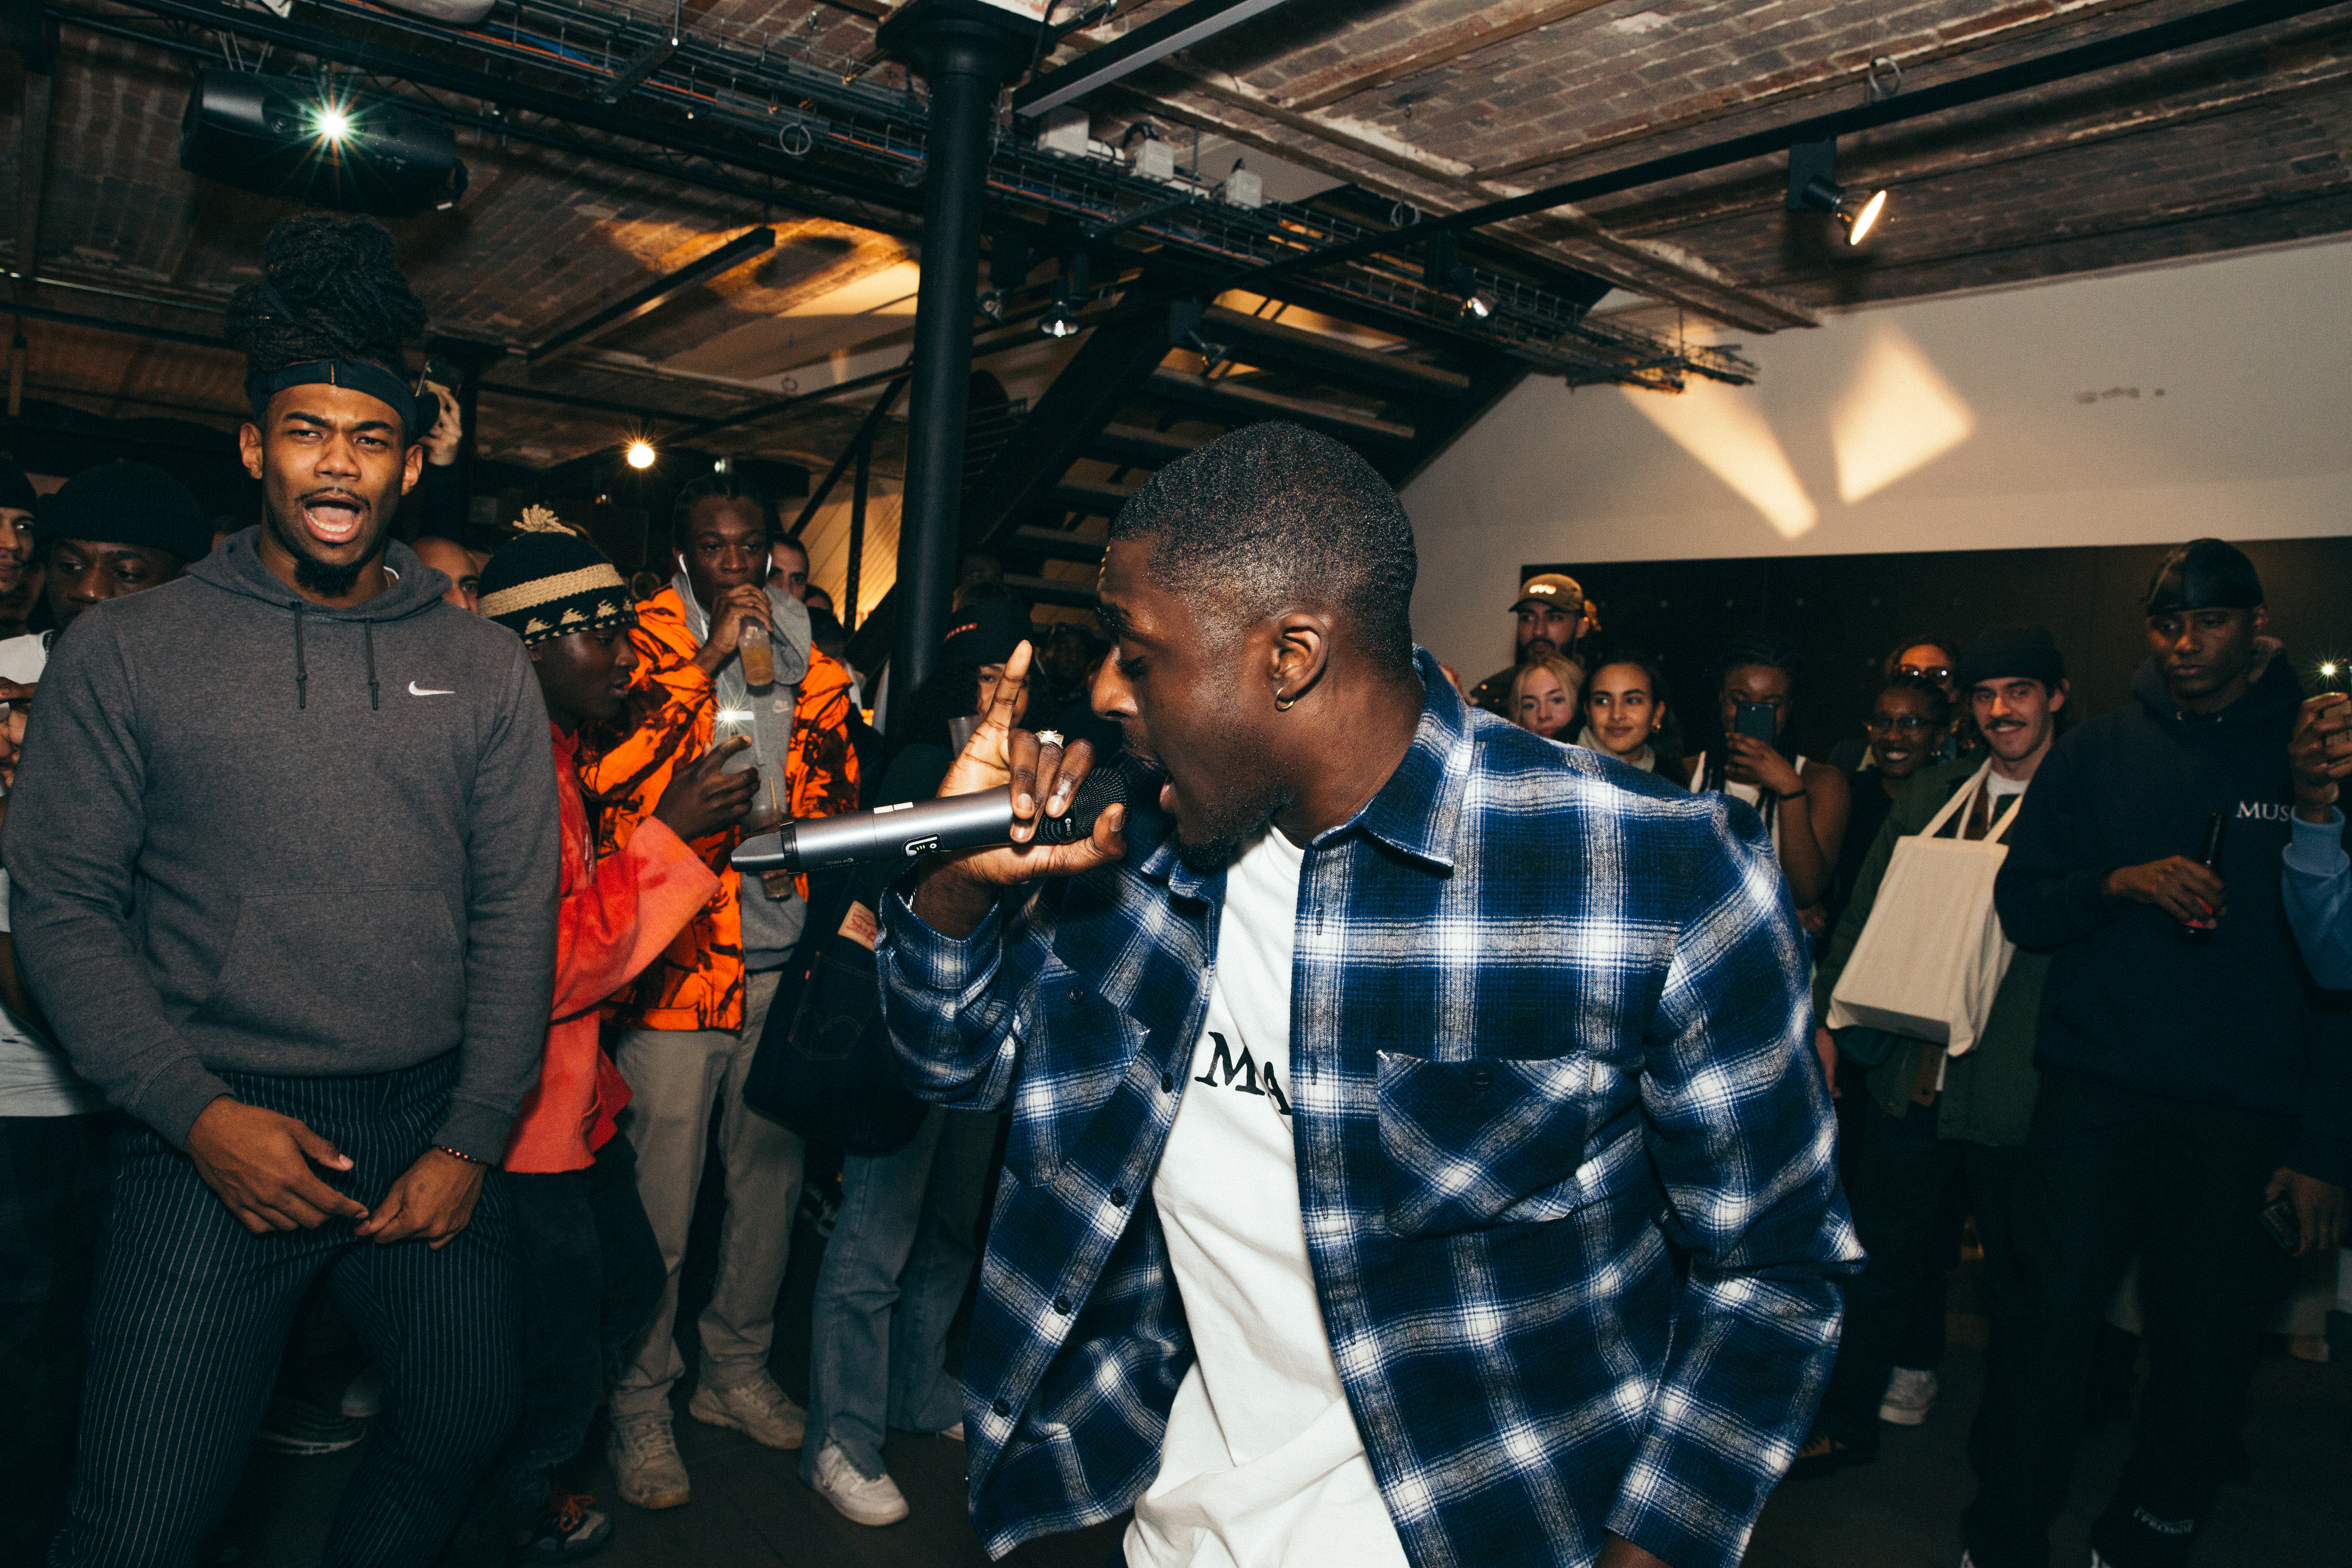 Converse's Pro Leather Celebration at the Faubourg